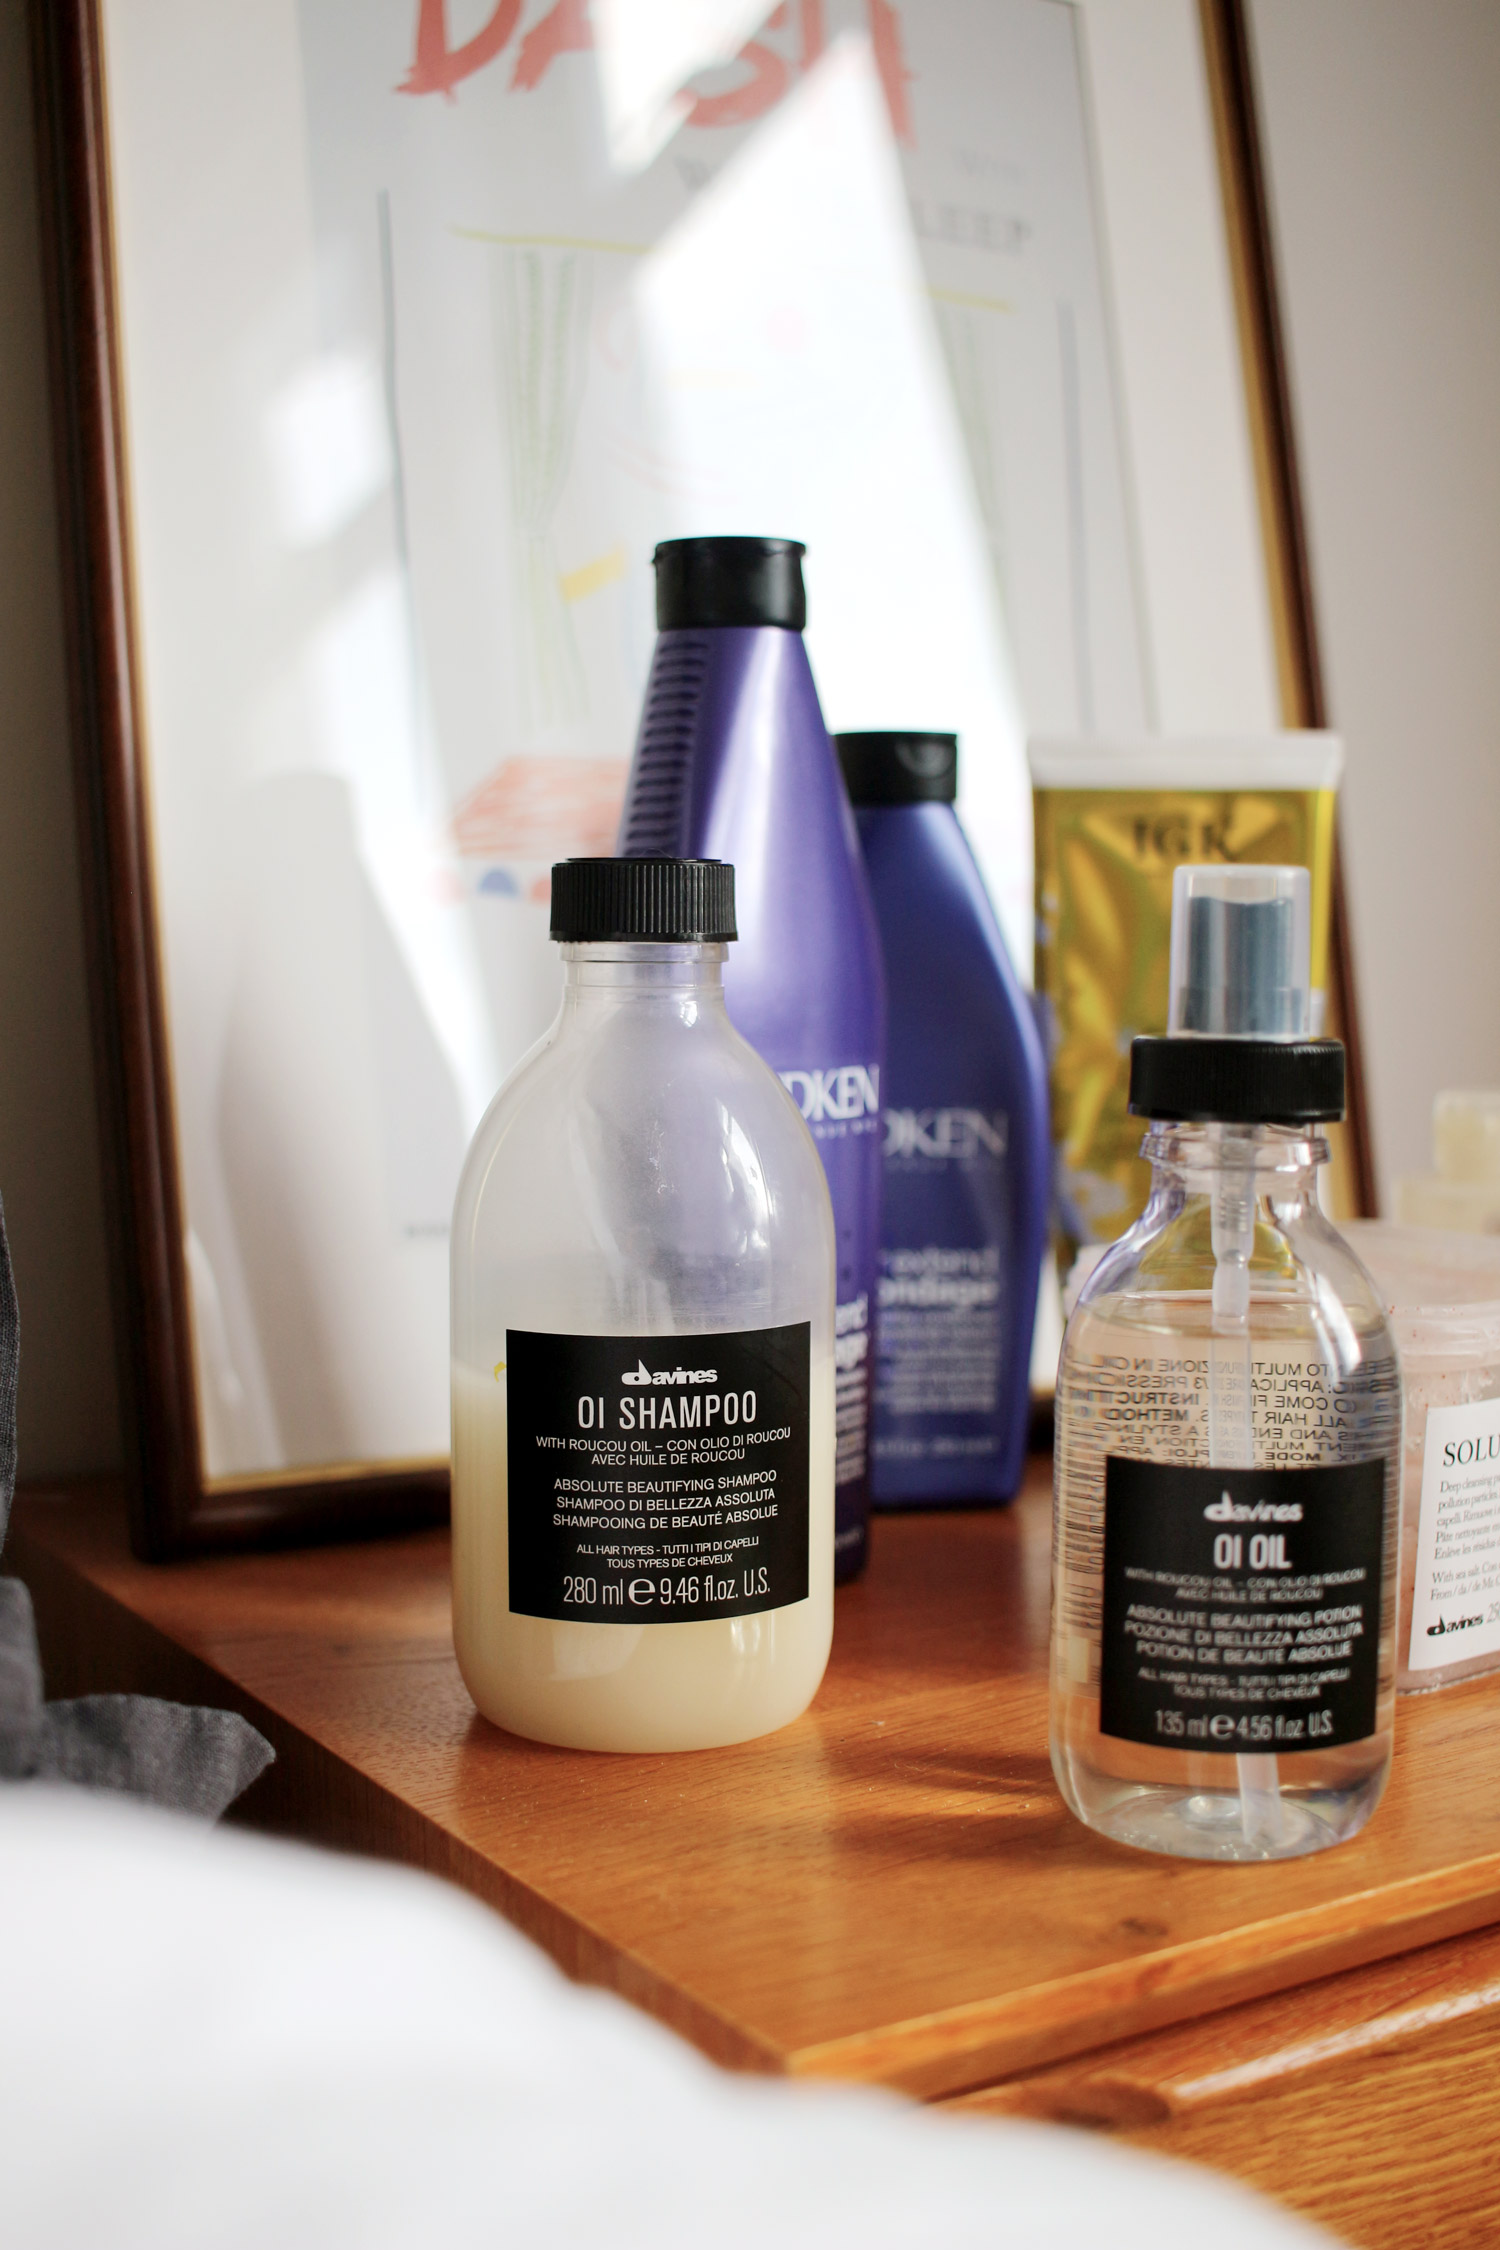 hair-products-davines-review-redken-blondage-thelovecatsinc-1